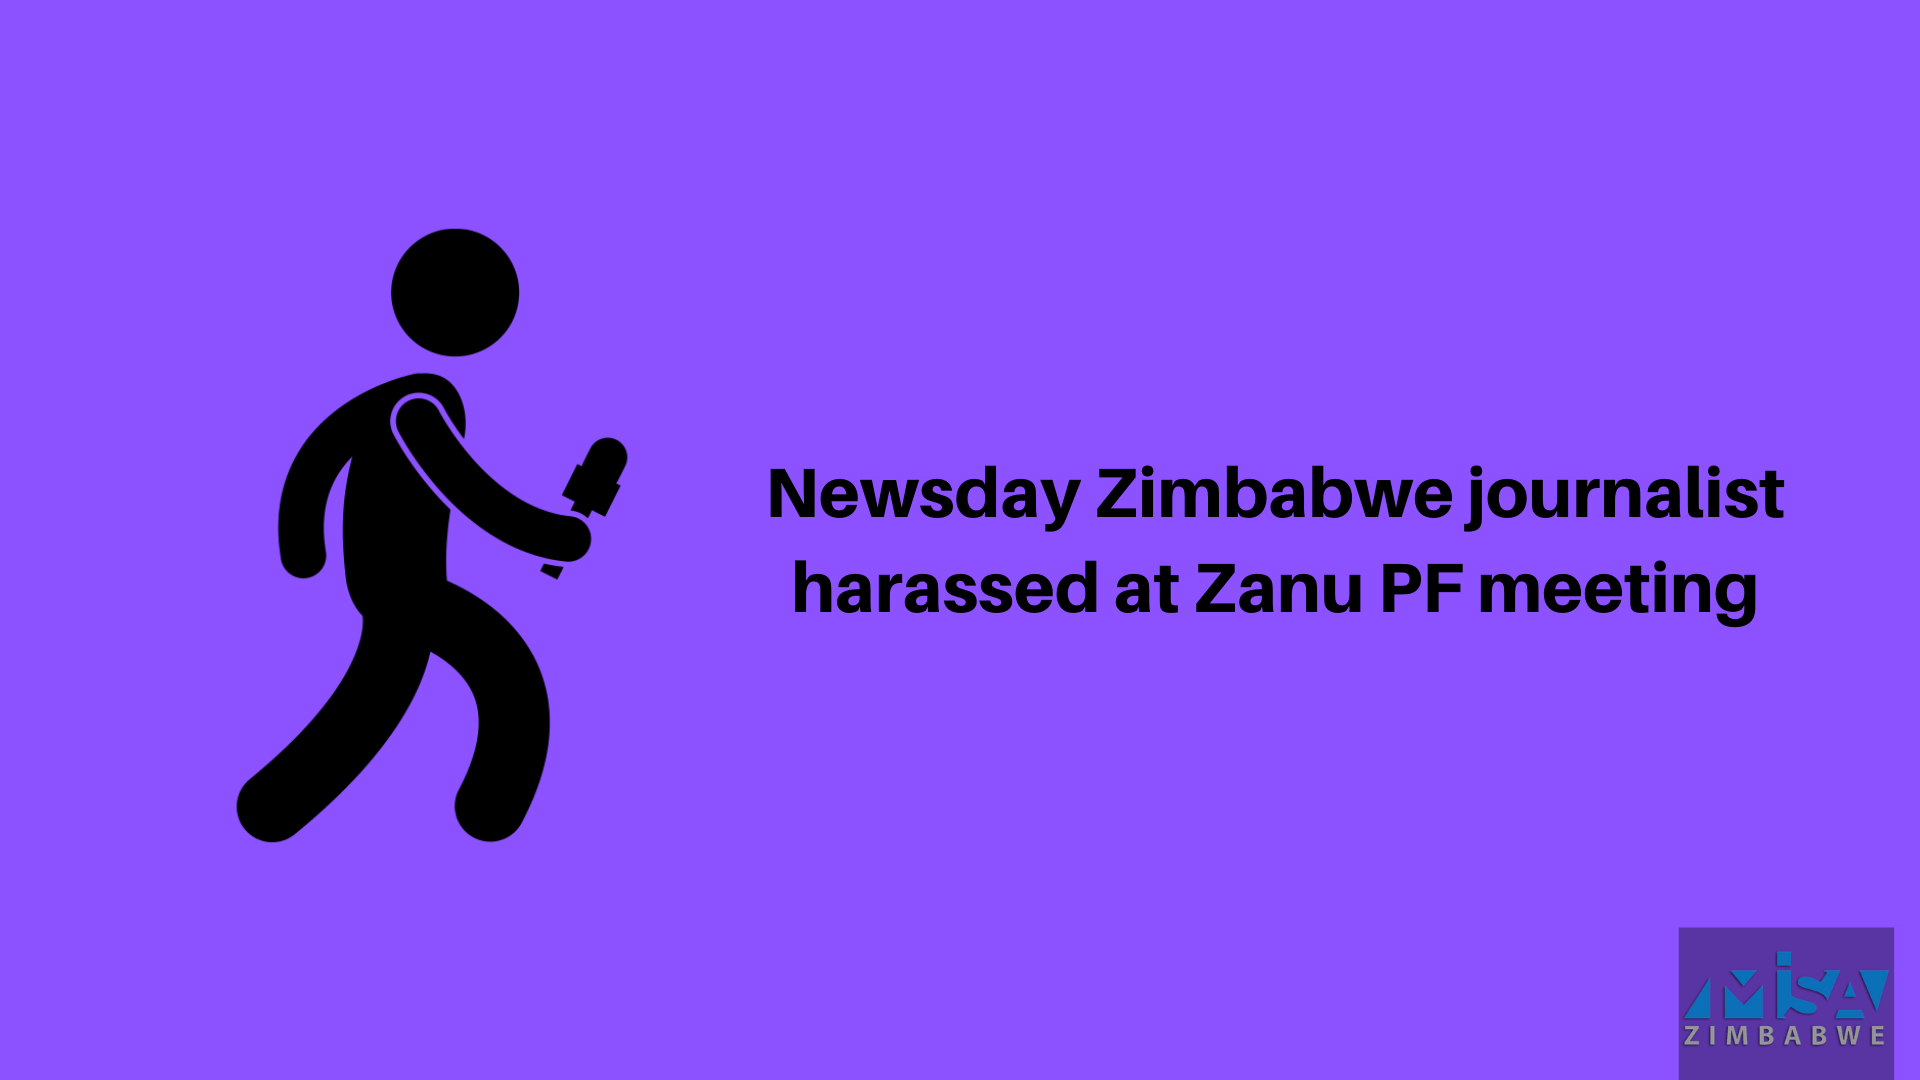 Newsday Zimbabwe journalist harassed at Zanu PF meeting